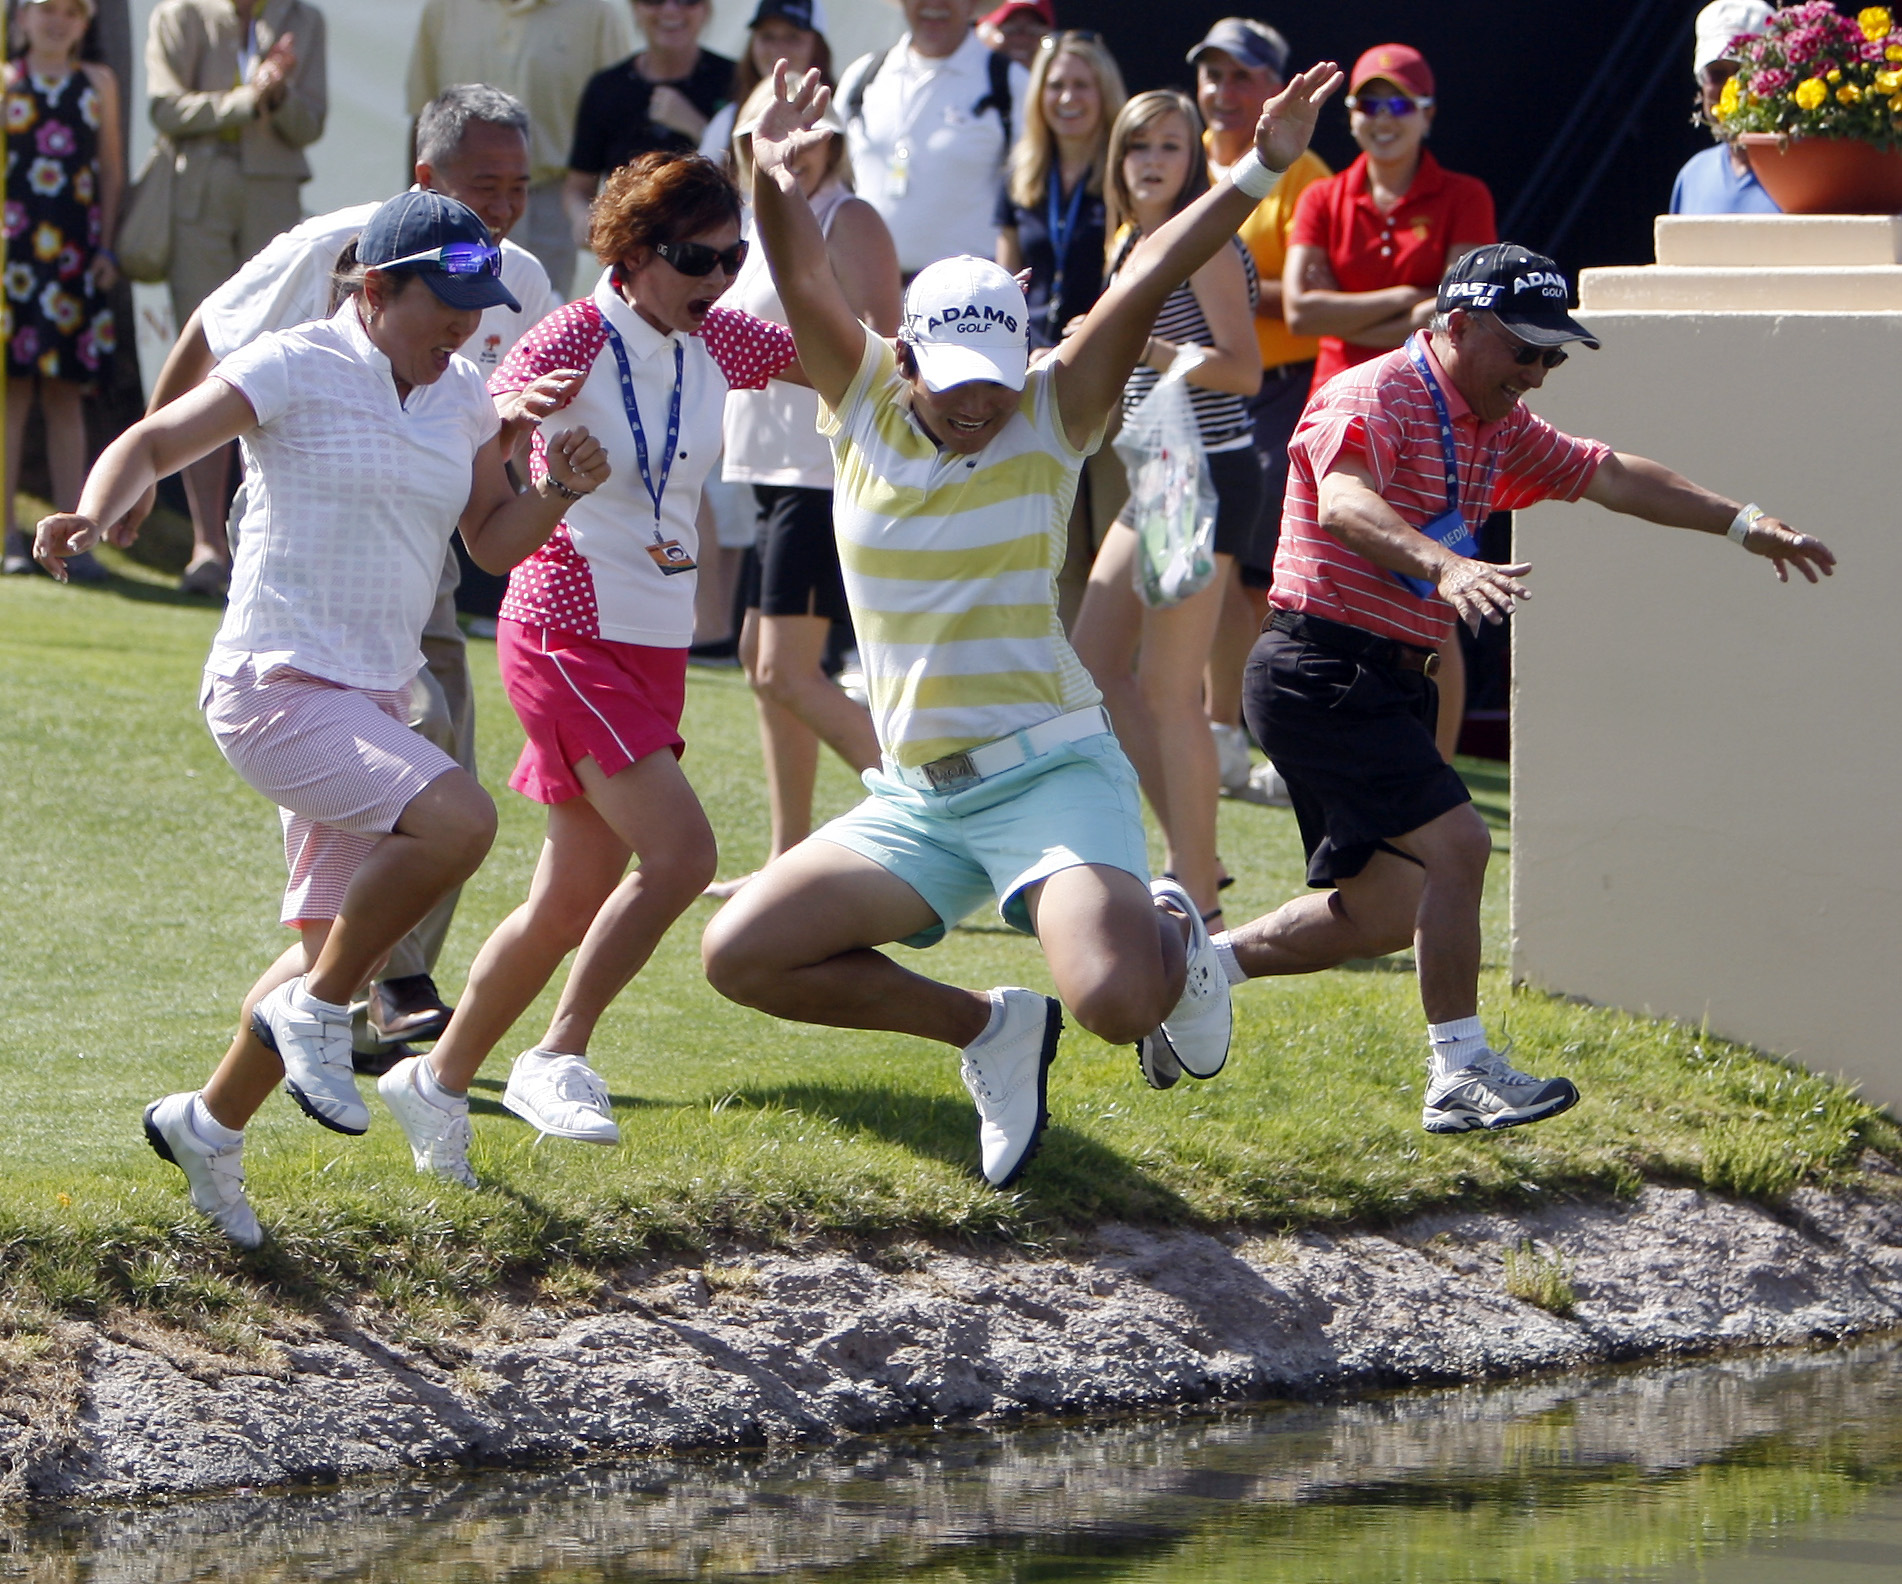 1. Yani Tseng, of Taiwan, celebrates by jumping into the pond with family and friends on the 18th hole after winning on the LPGA Kraft Nabisco Champio...